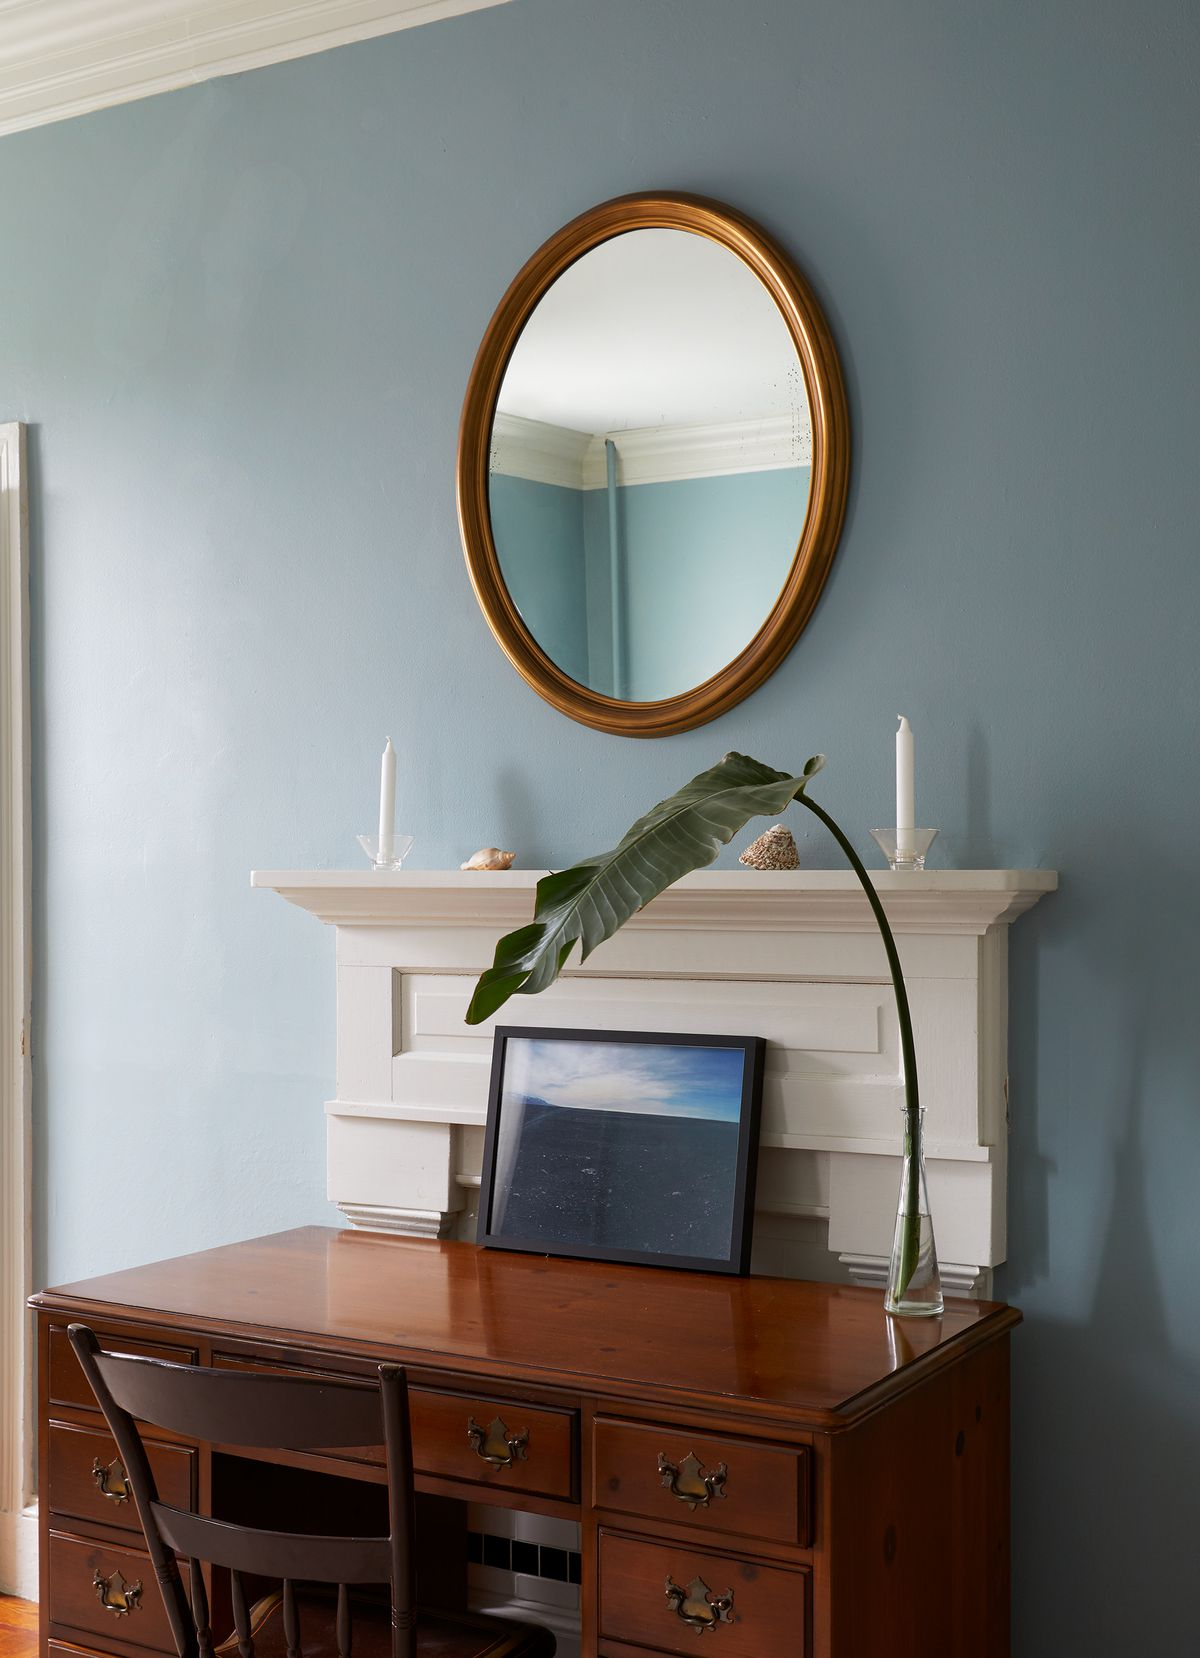 A part of a room. There is a wooden desk with a chair. A plant in a glass vase is on top of the desk. There is a fireplace against the wall. Above the fireplace is an oval mirror. The wall is painted light blue.